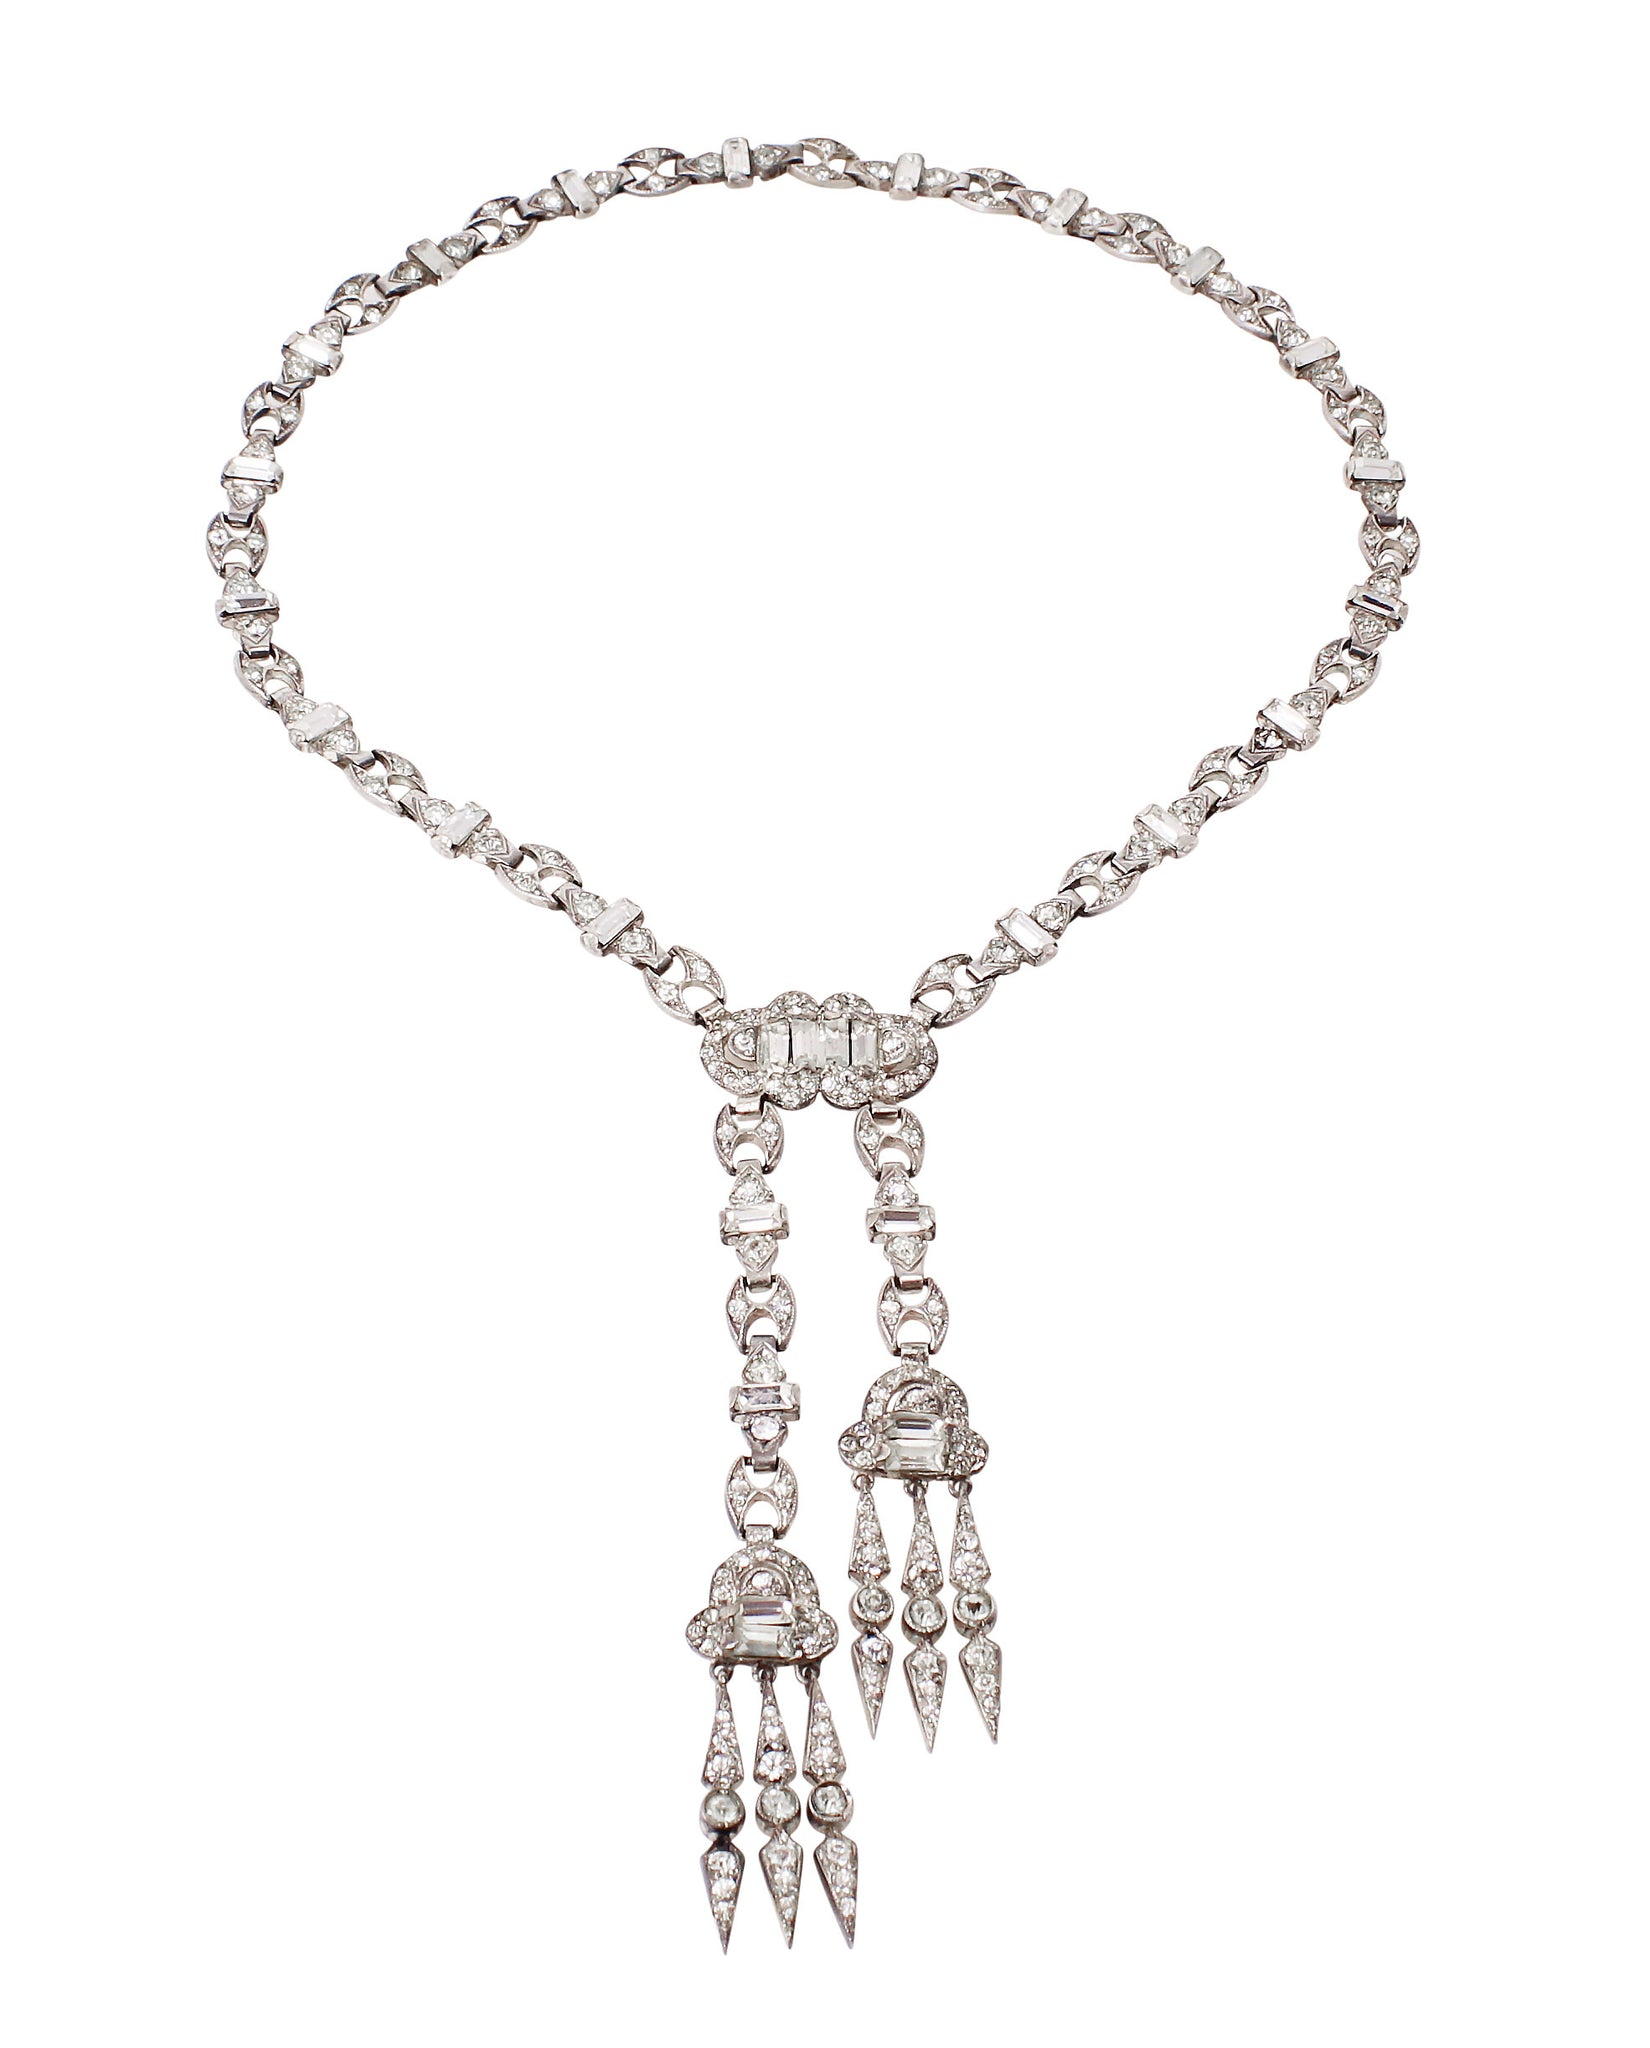 Art Deco Sterling and Rhinestone Necklace by Fishel, Nessler & Co.